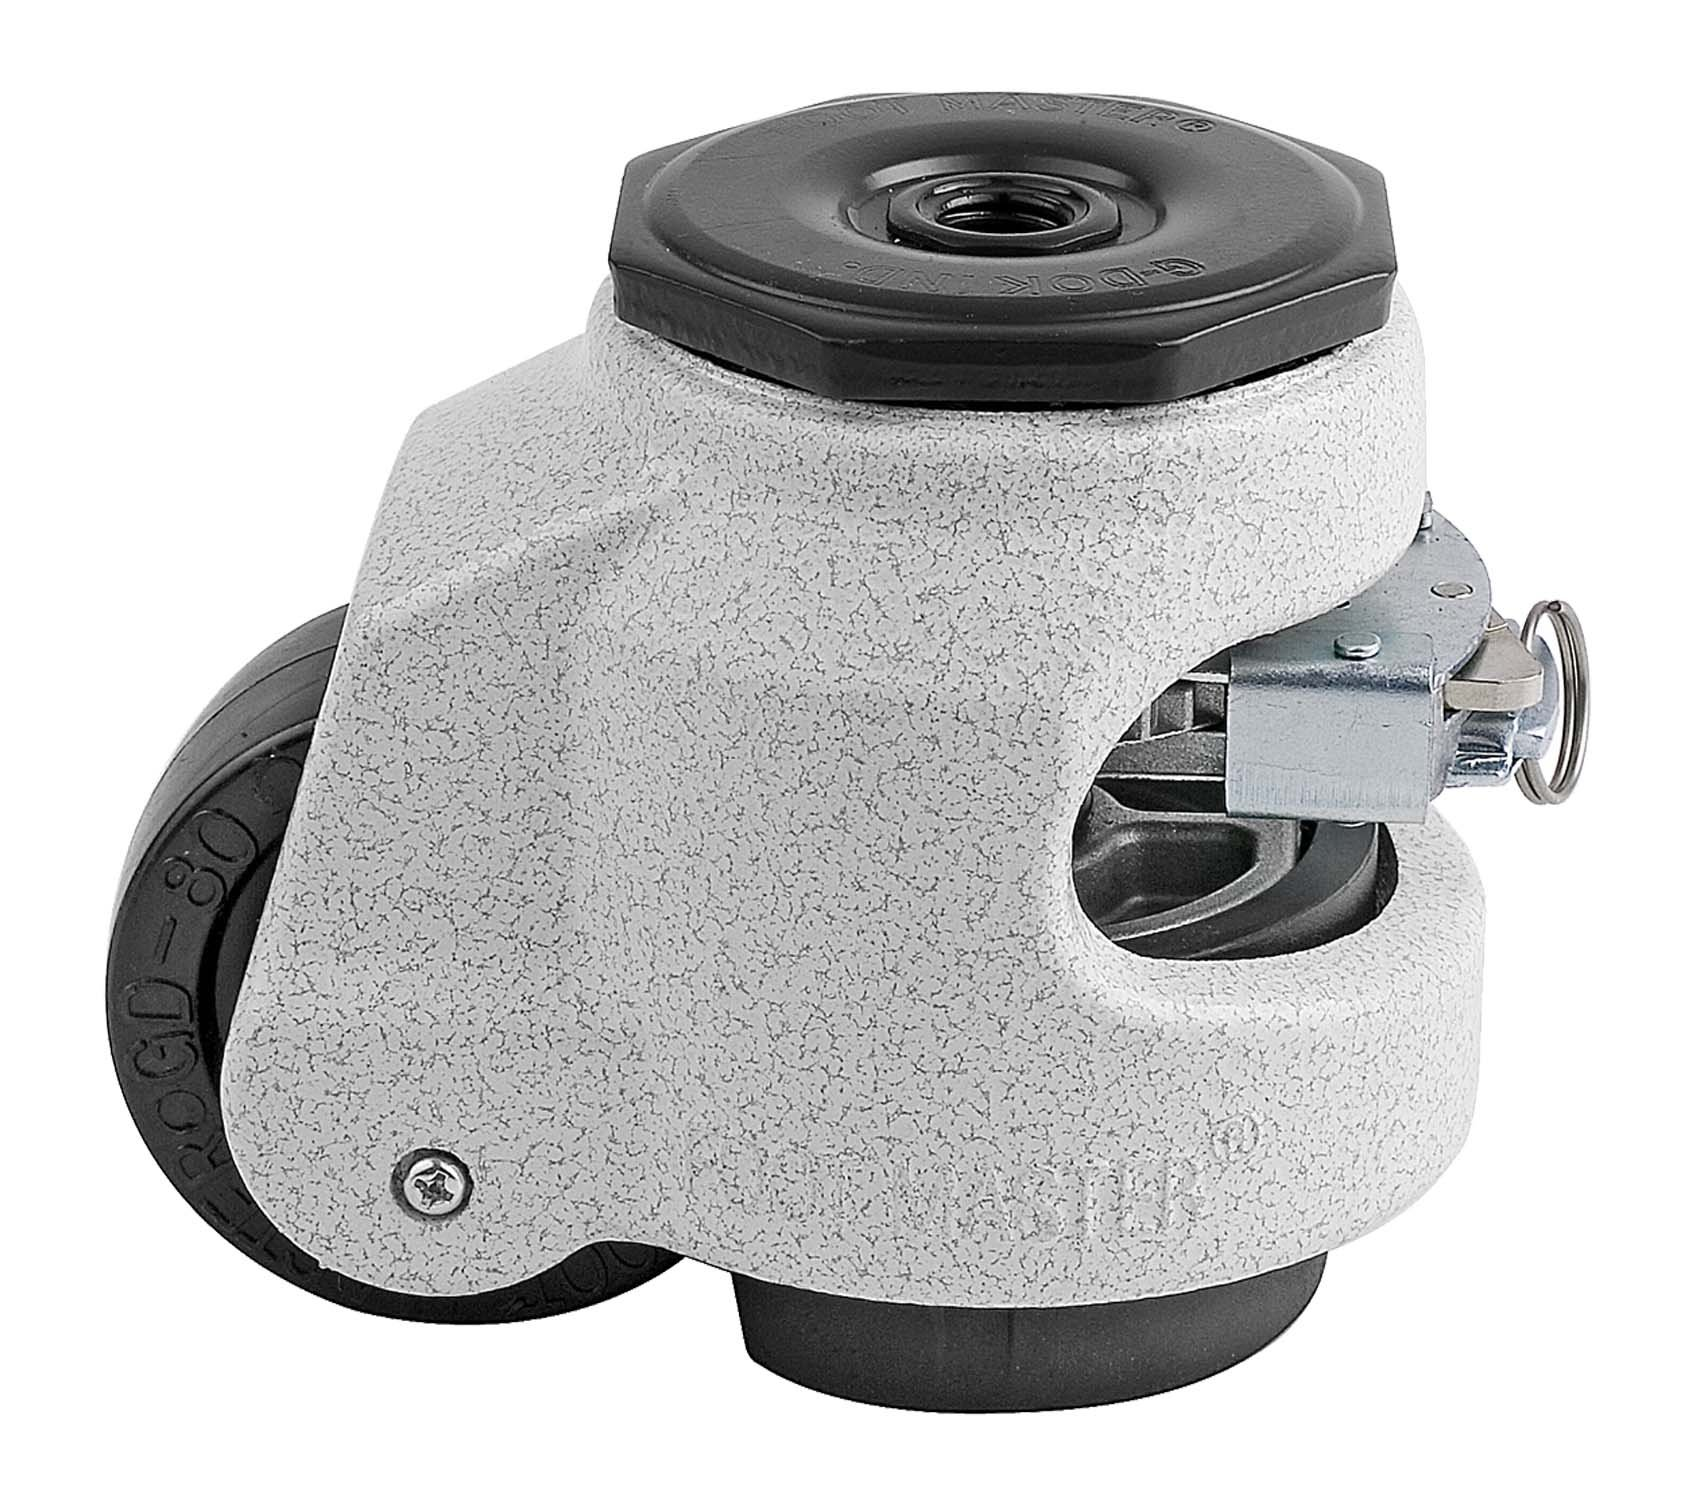 FOOTMASTER GDR-80S Nylon Wheel and NBR Pad Ratcheting Leveling Caster, 1100 lbs, Stem Mounted with 0.472'' Mounting Hole Diameter, Ivory by FOOTMASTER